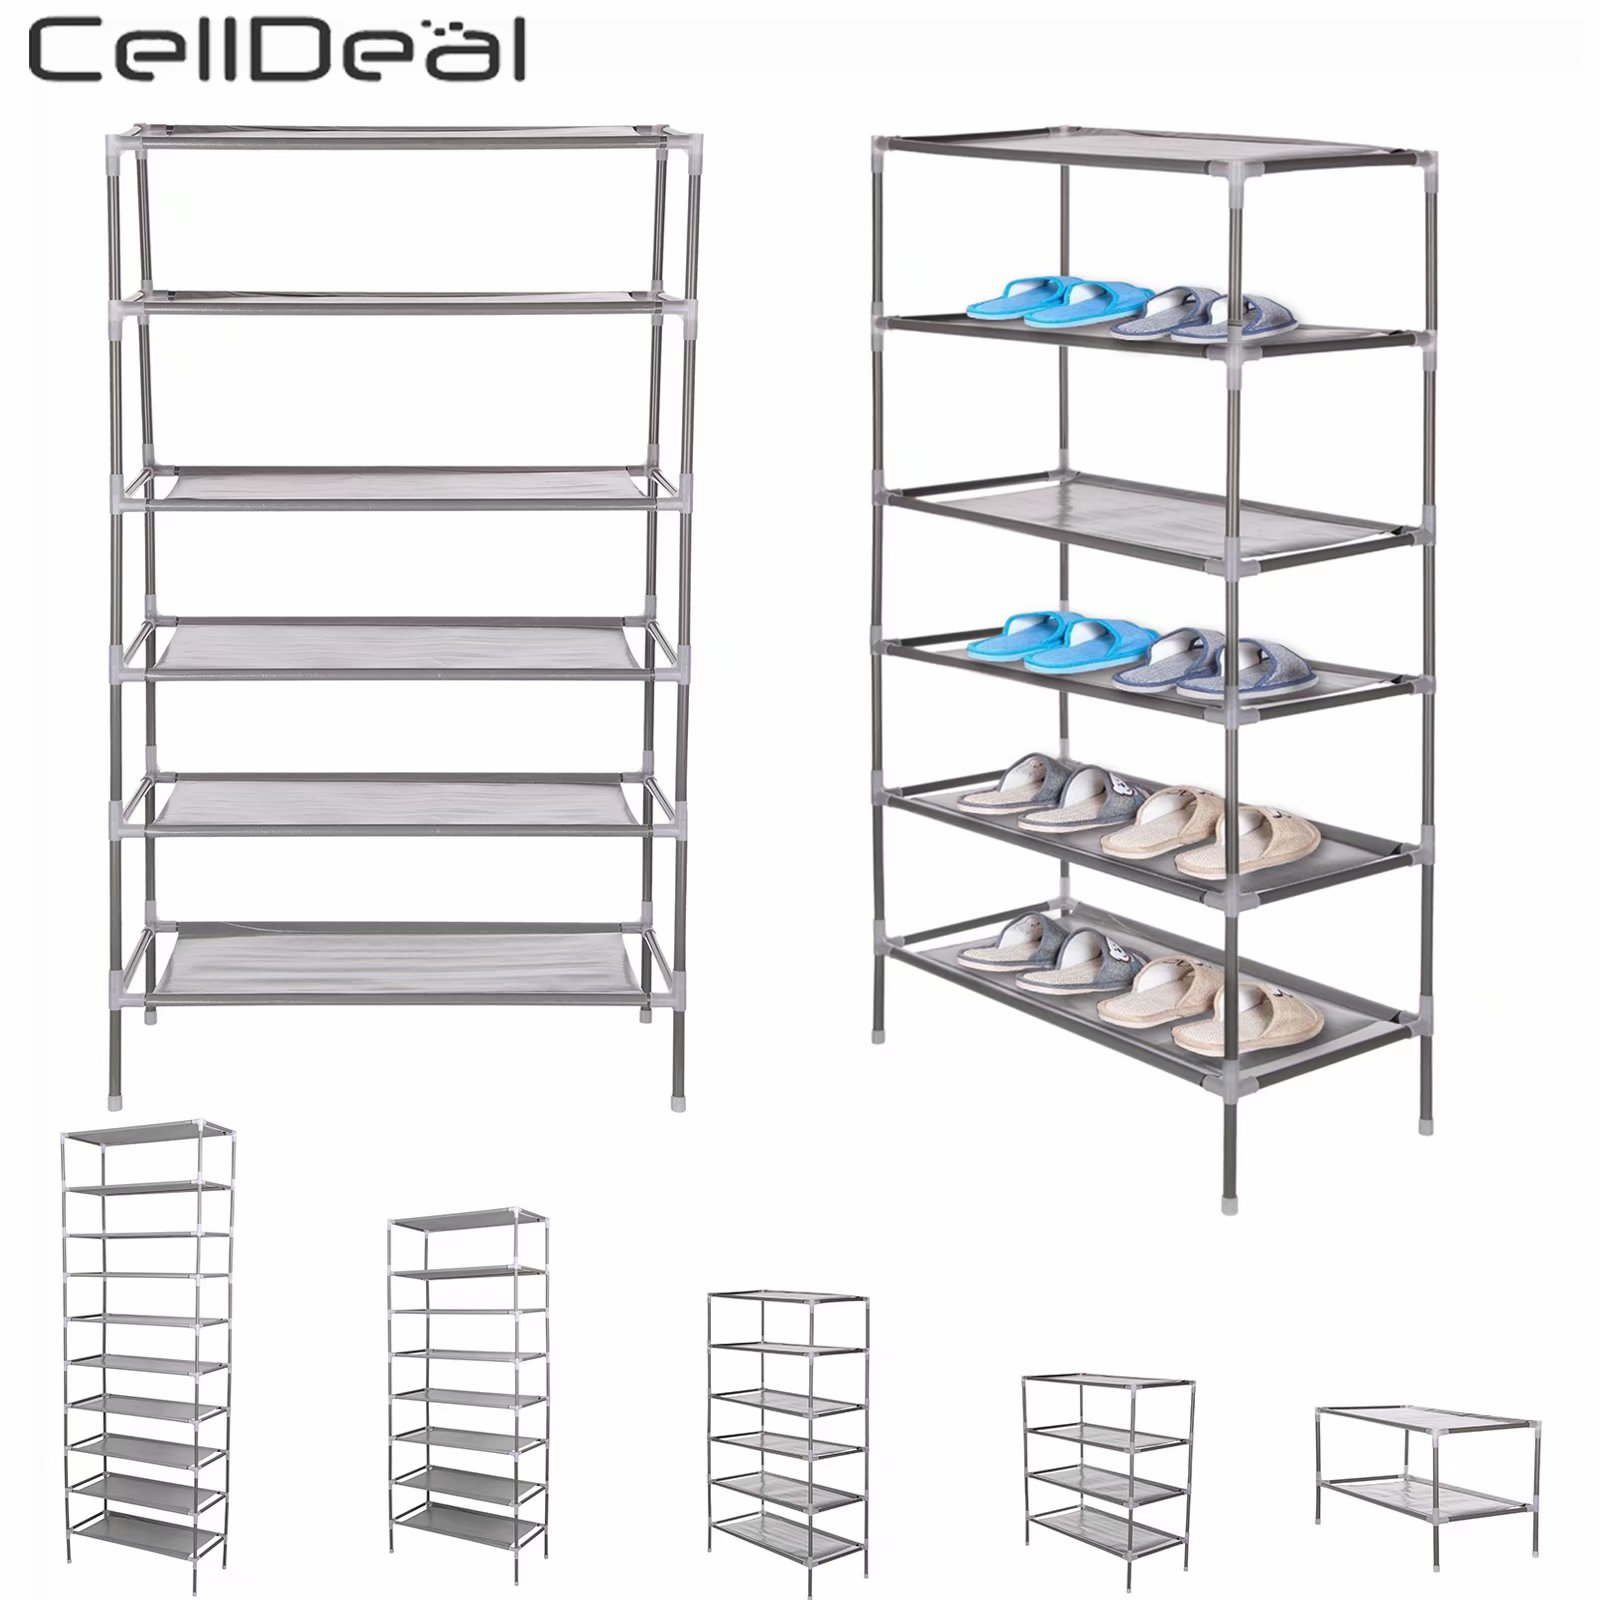 2/4/6-/.. Shelf Cover Shoe-Rack Storage-Organizer Cabinet Tiers Non-Woven-Fabric Dustproof